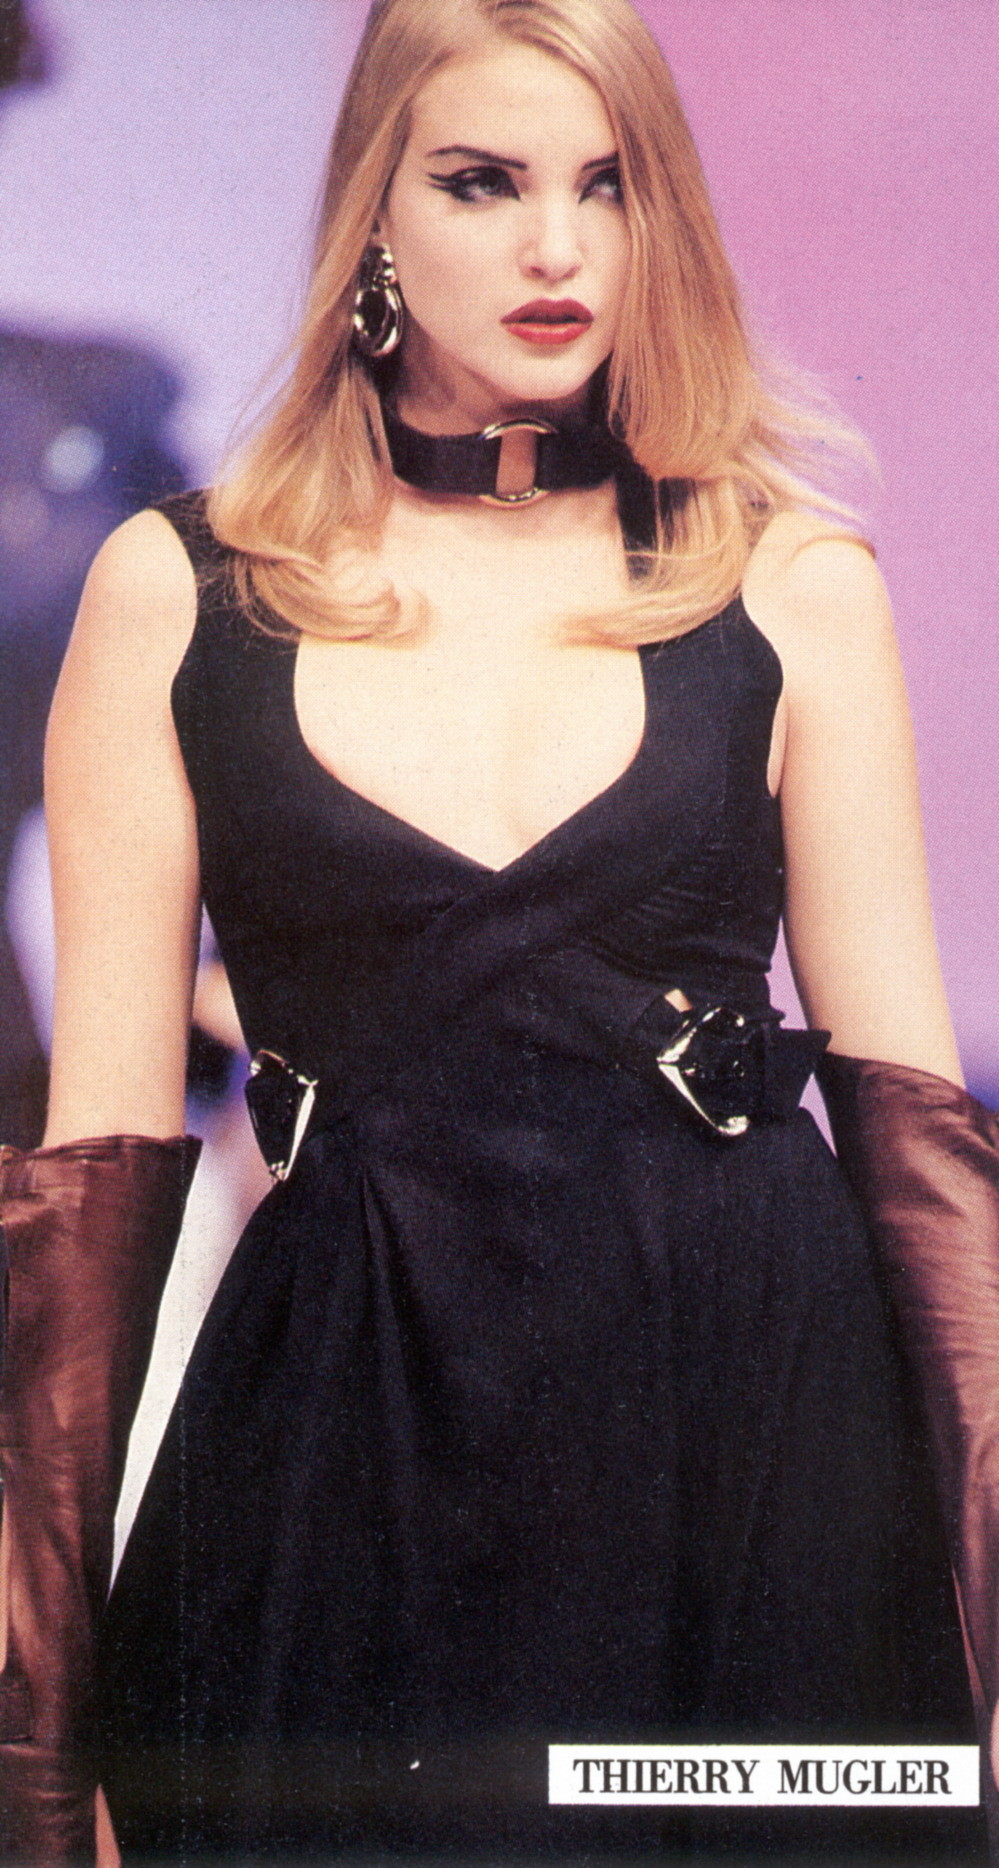 Nadja for Thierry Mugler, s/s 1992